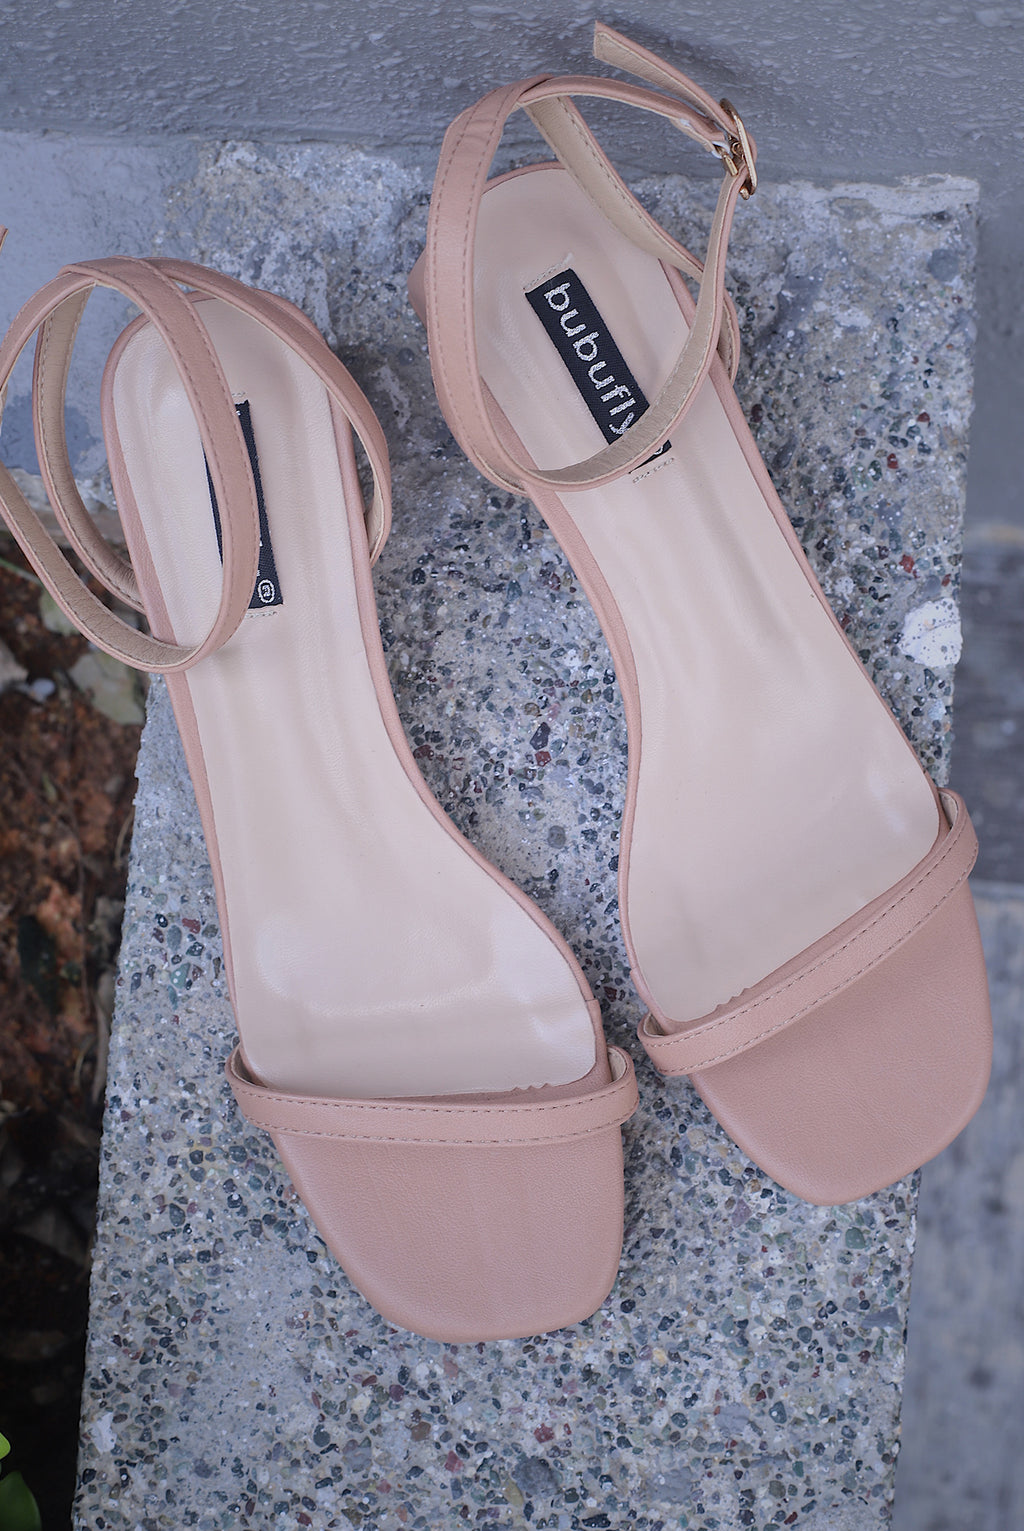 Eily Strappy Heels In Nude